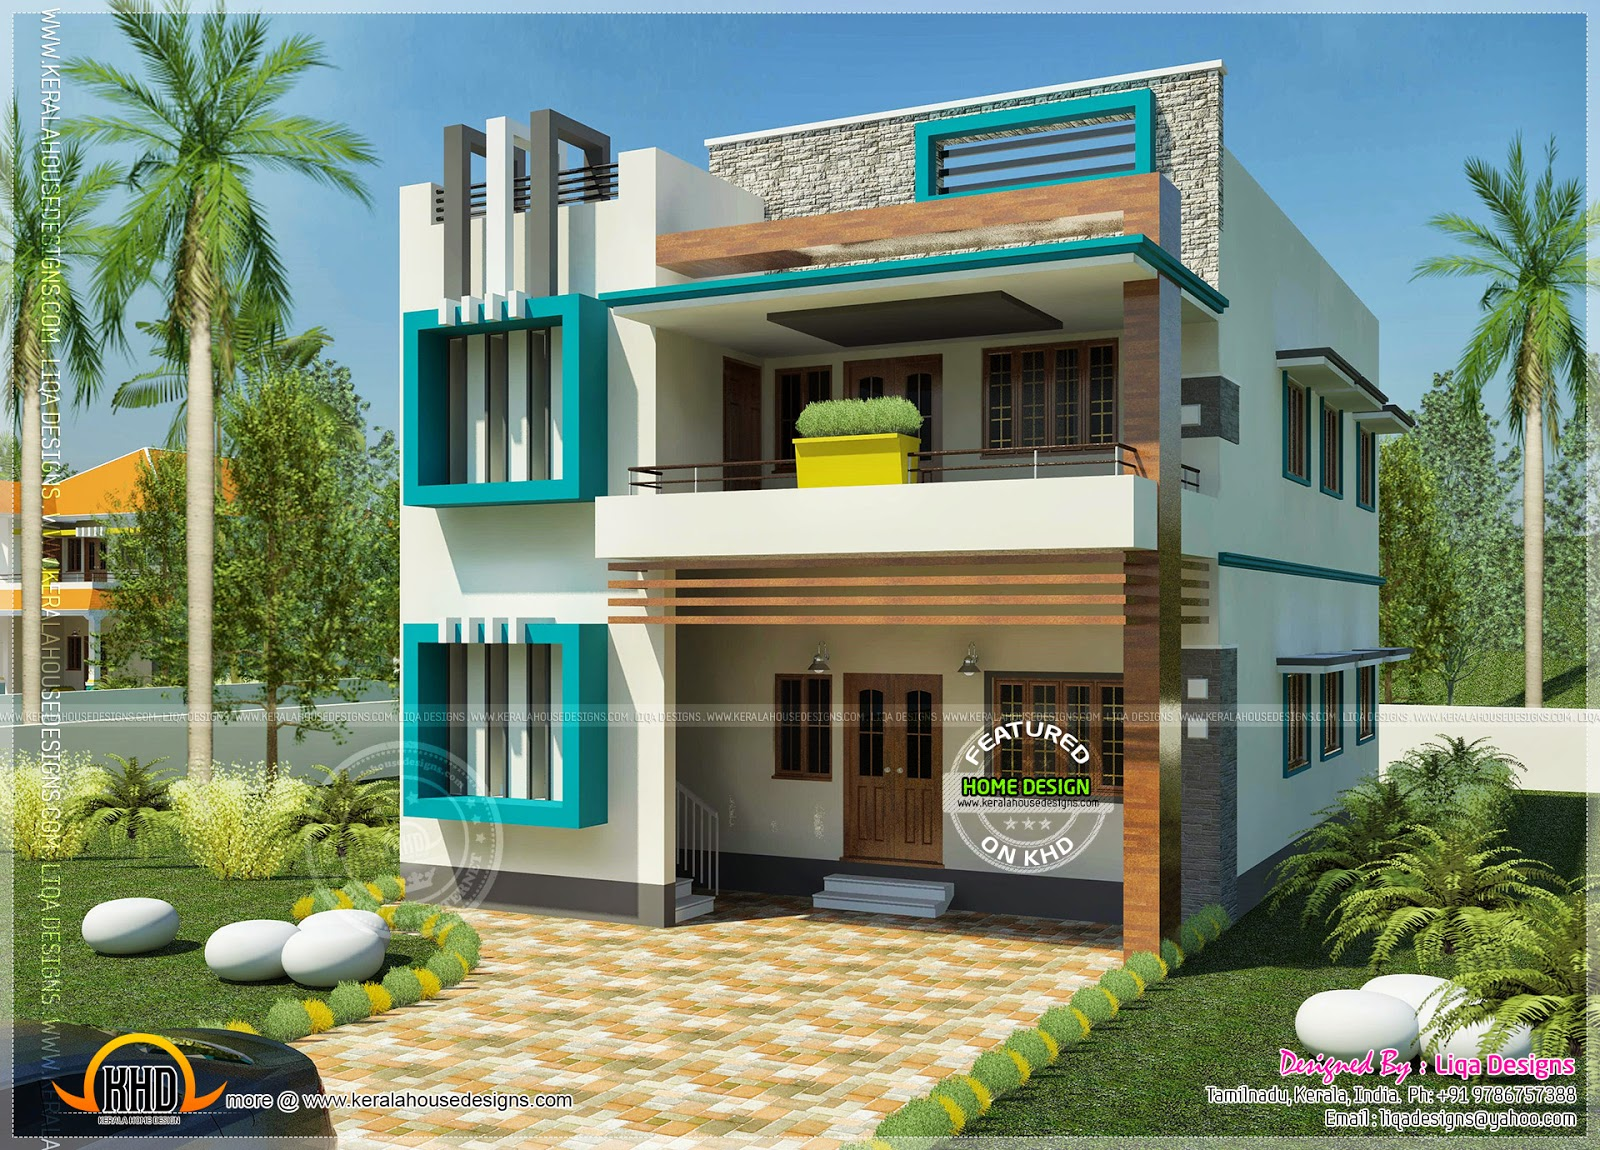 South indian contemporary home kerala home design and Simple home designs photos